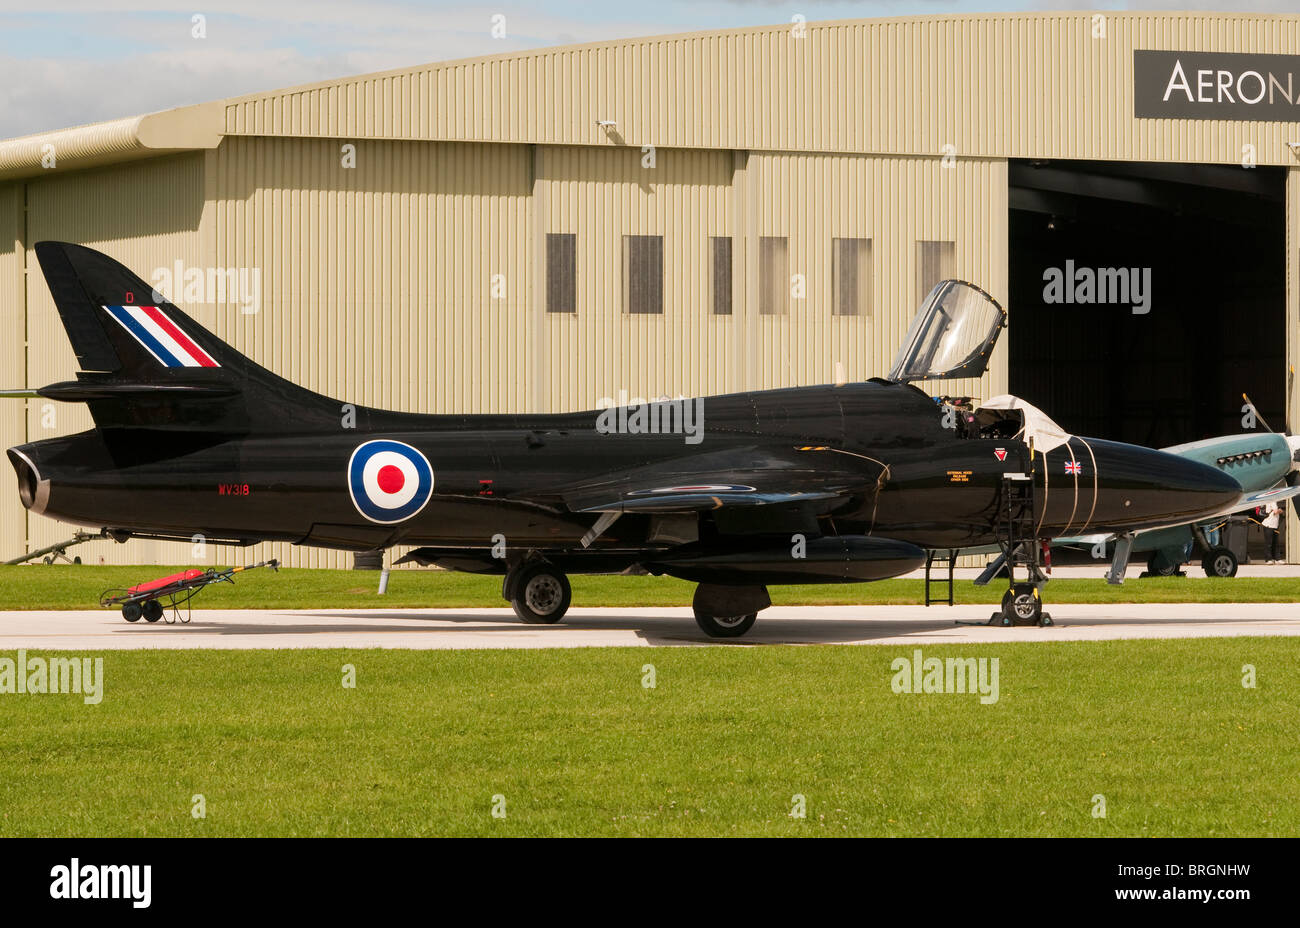 Hawker Hunter jet aircraft outside a hangar at Kemble cotswolds Airport on Battle of Britain Day 2011 - Stock Image